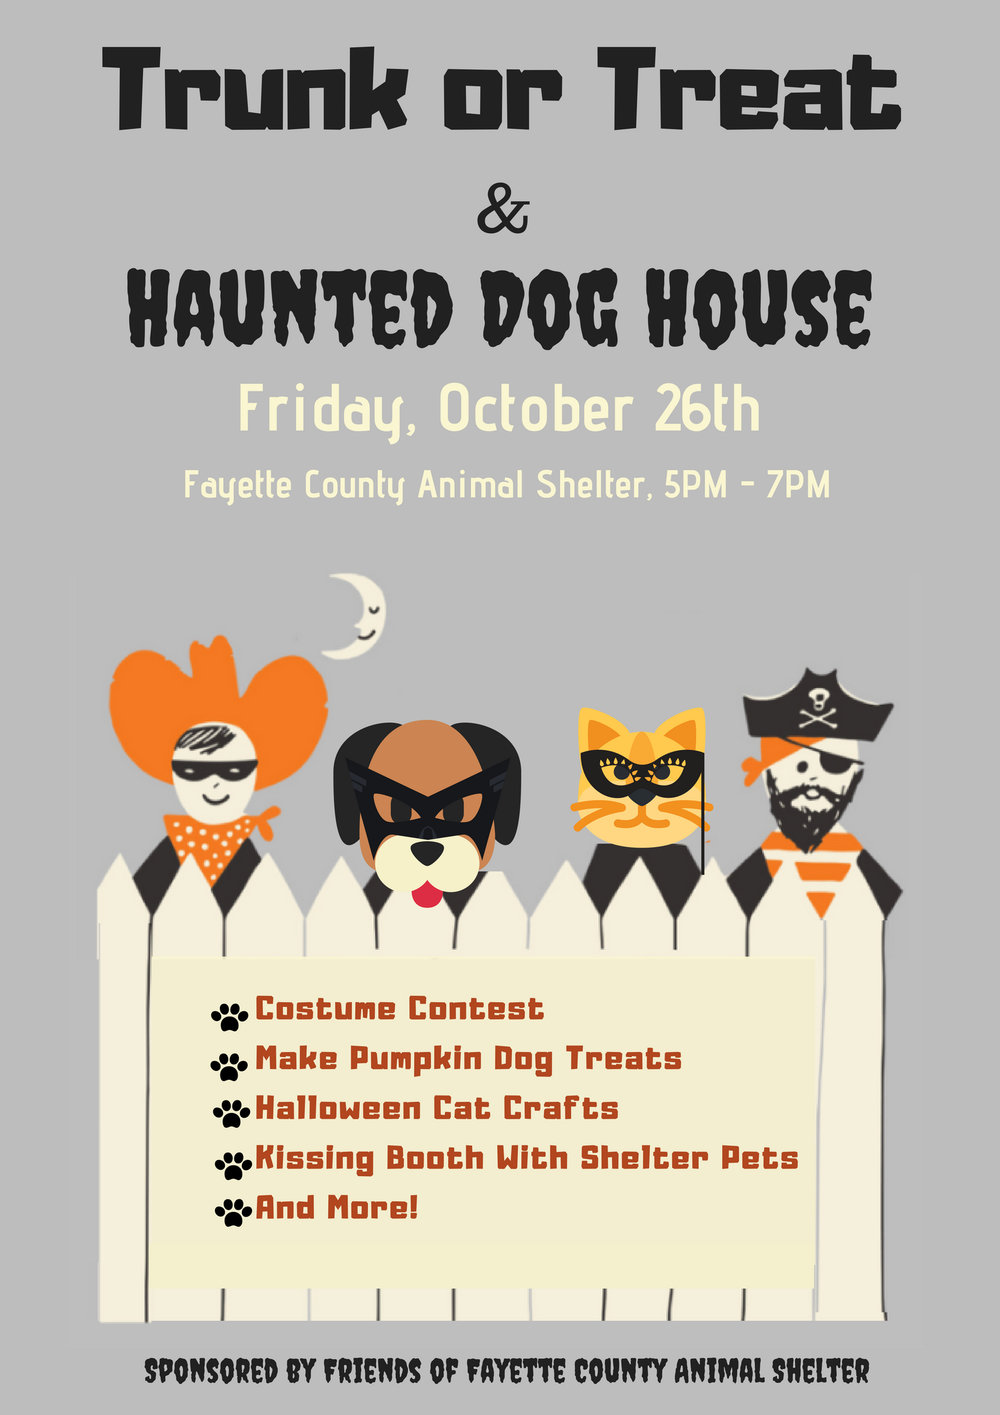 Trunk or Treat - October 26, 2018Join us for a spooktacular fun time at this years Trunk or Treat & Haunted Dog House event Friday, October 26th!